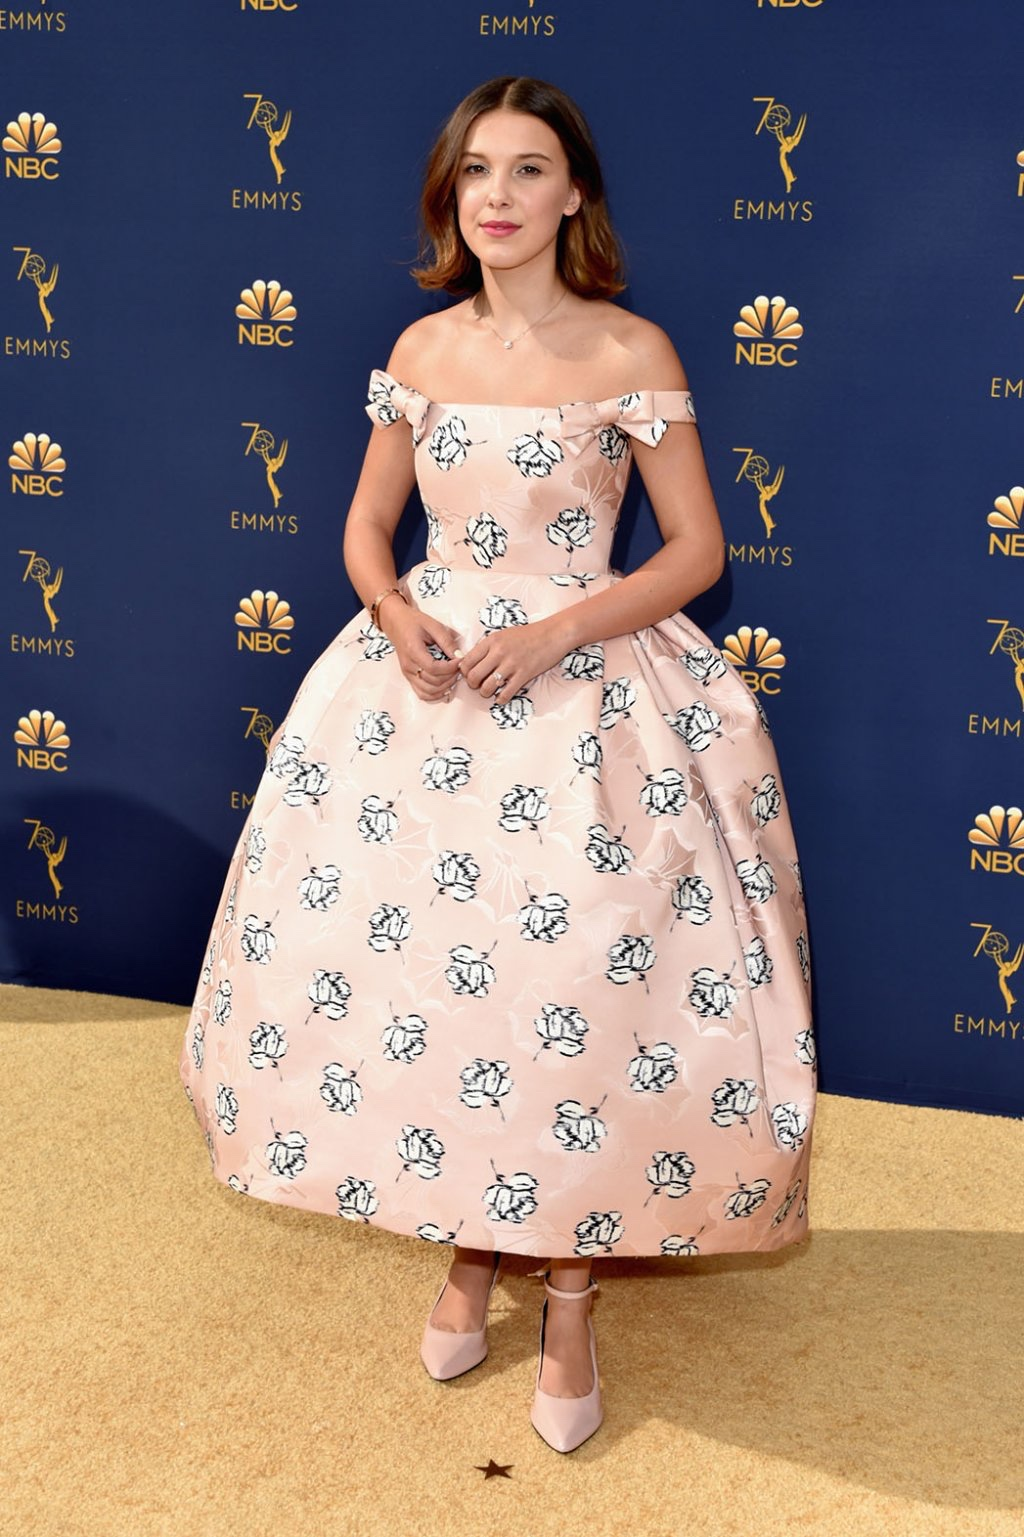 Millie Bobby Brown in Calvin Klein by Appointment, 70th Annual Primetime Emmy Awards, Betty White, Emmys 2018, Fashion, Featured, Glenn Weiss, Hannah Gadsby, highlights, Jav Svendsen, Online Exclusive, Style, The Marvellous Mrs. Maisel, top moments, We solved it, Diversity